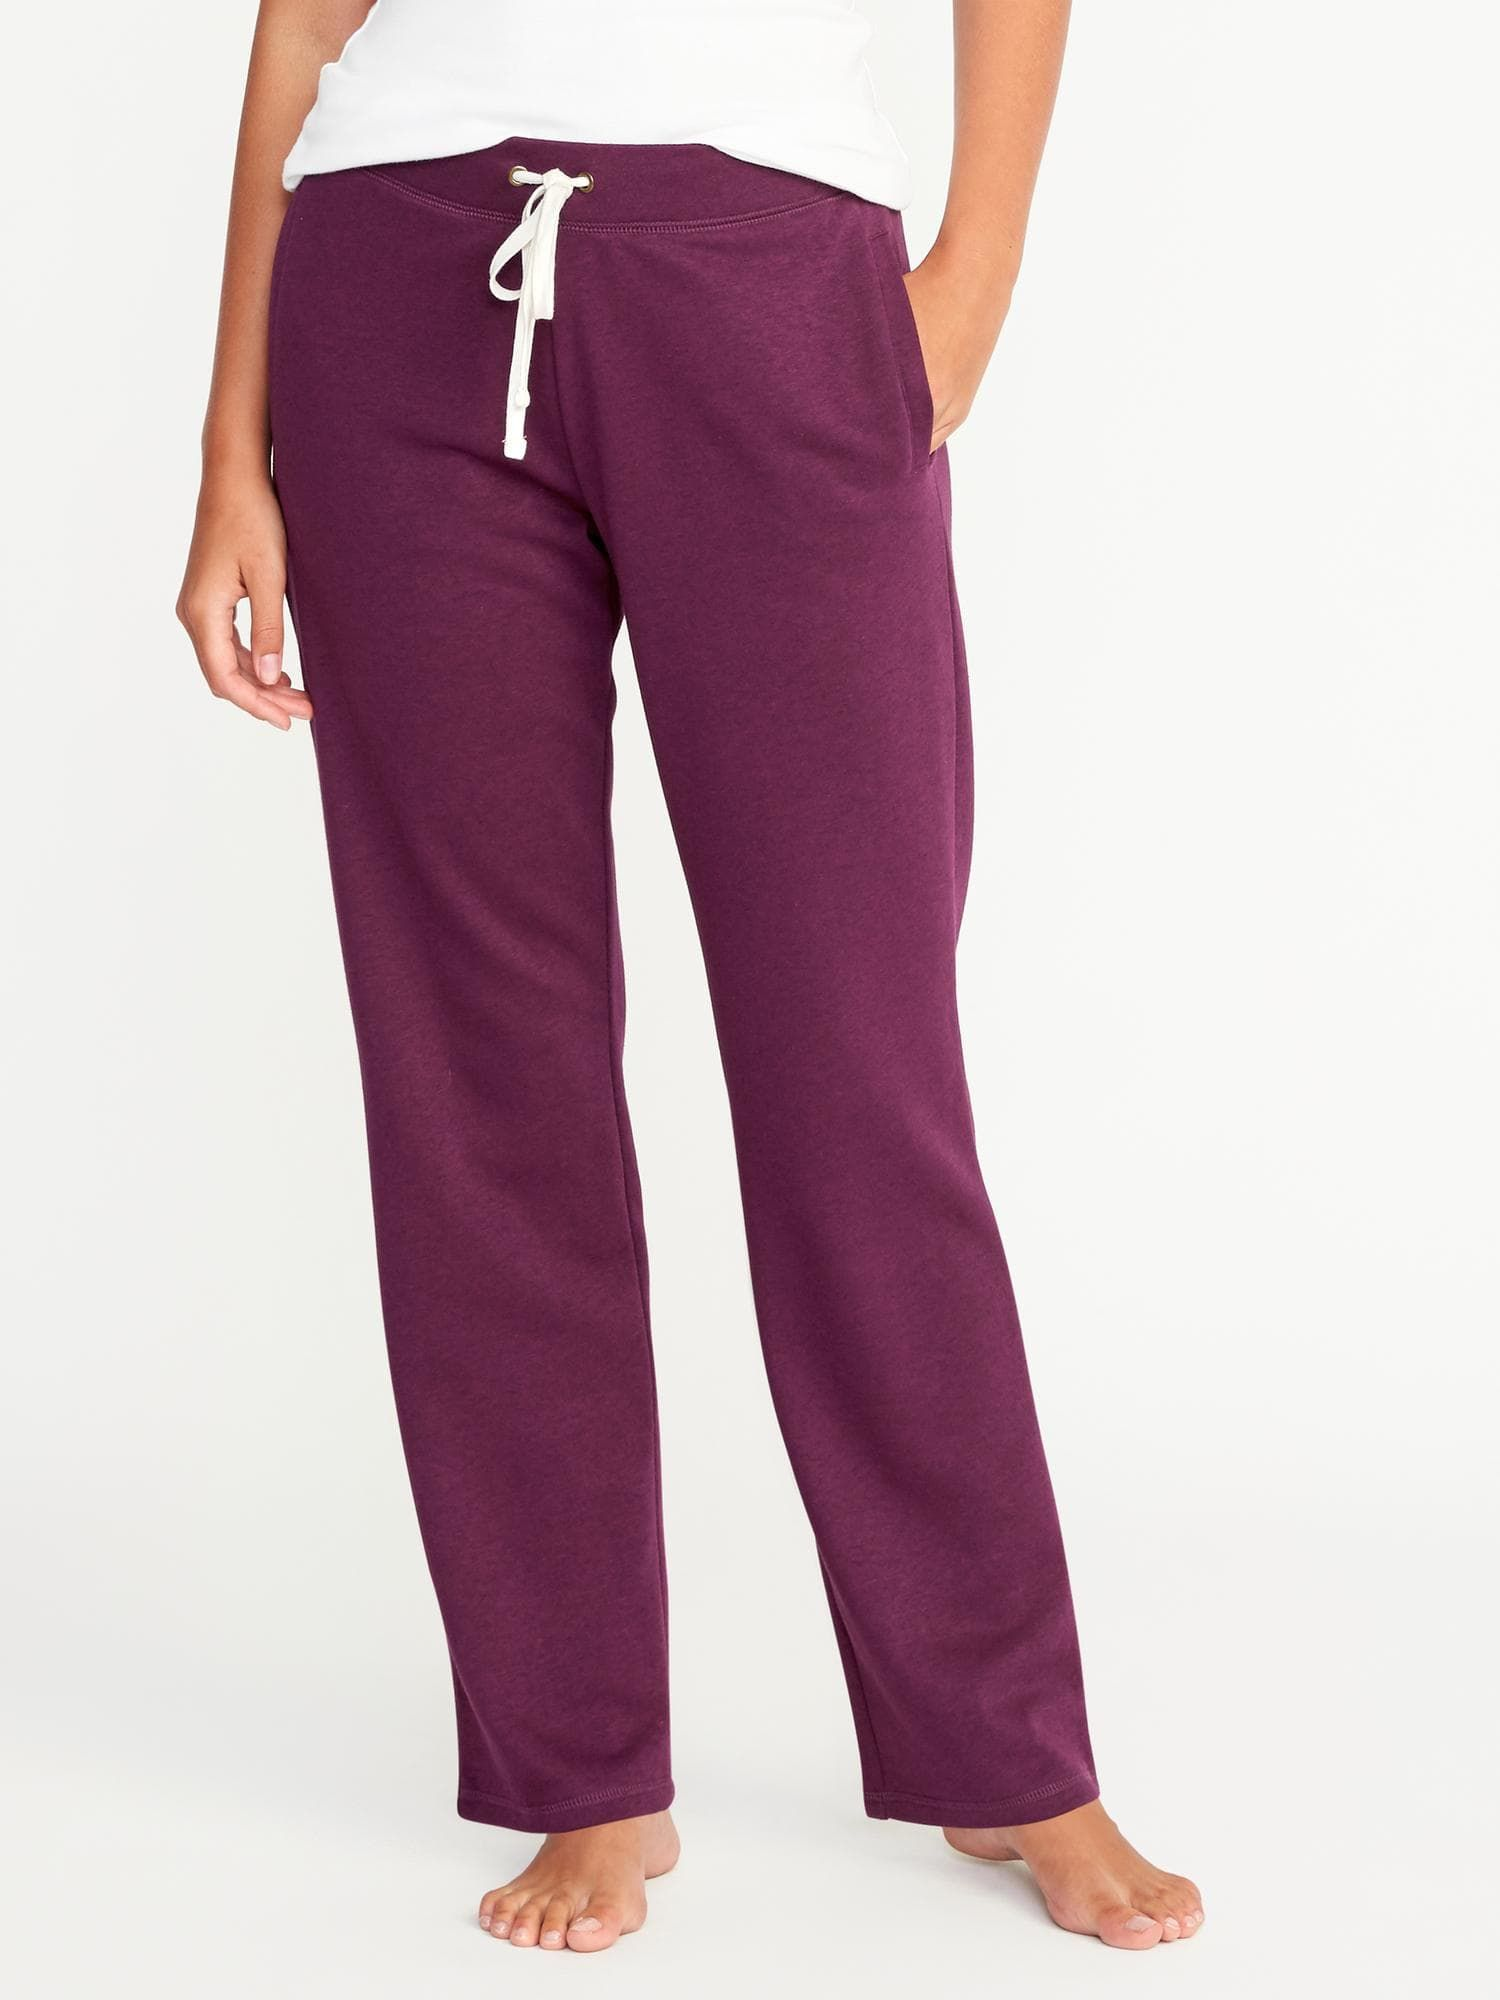 e81fcc3fc1d73 product photo Pajama Pants, Women's Pants, Shop Old Navy, Welt Pocket,  French